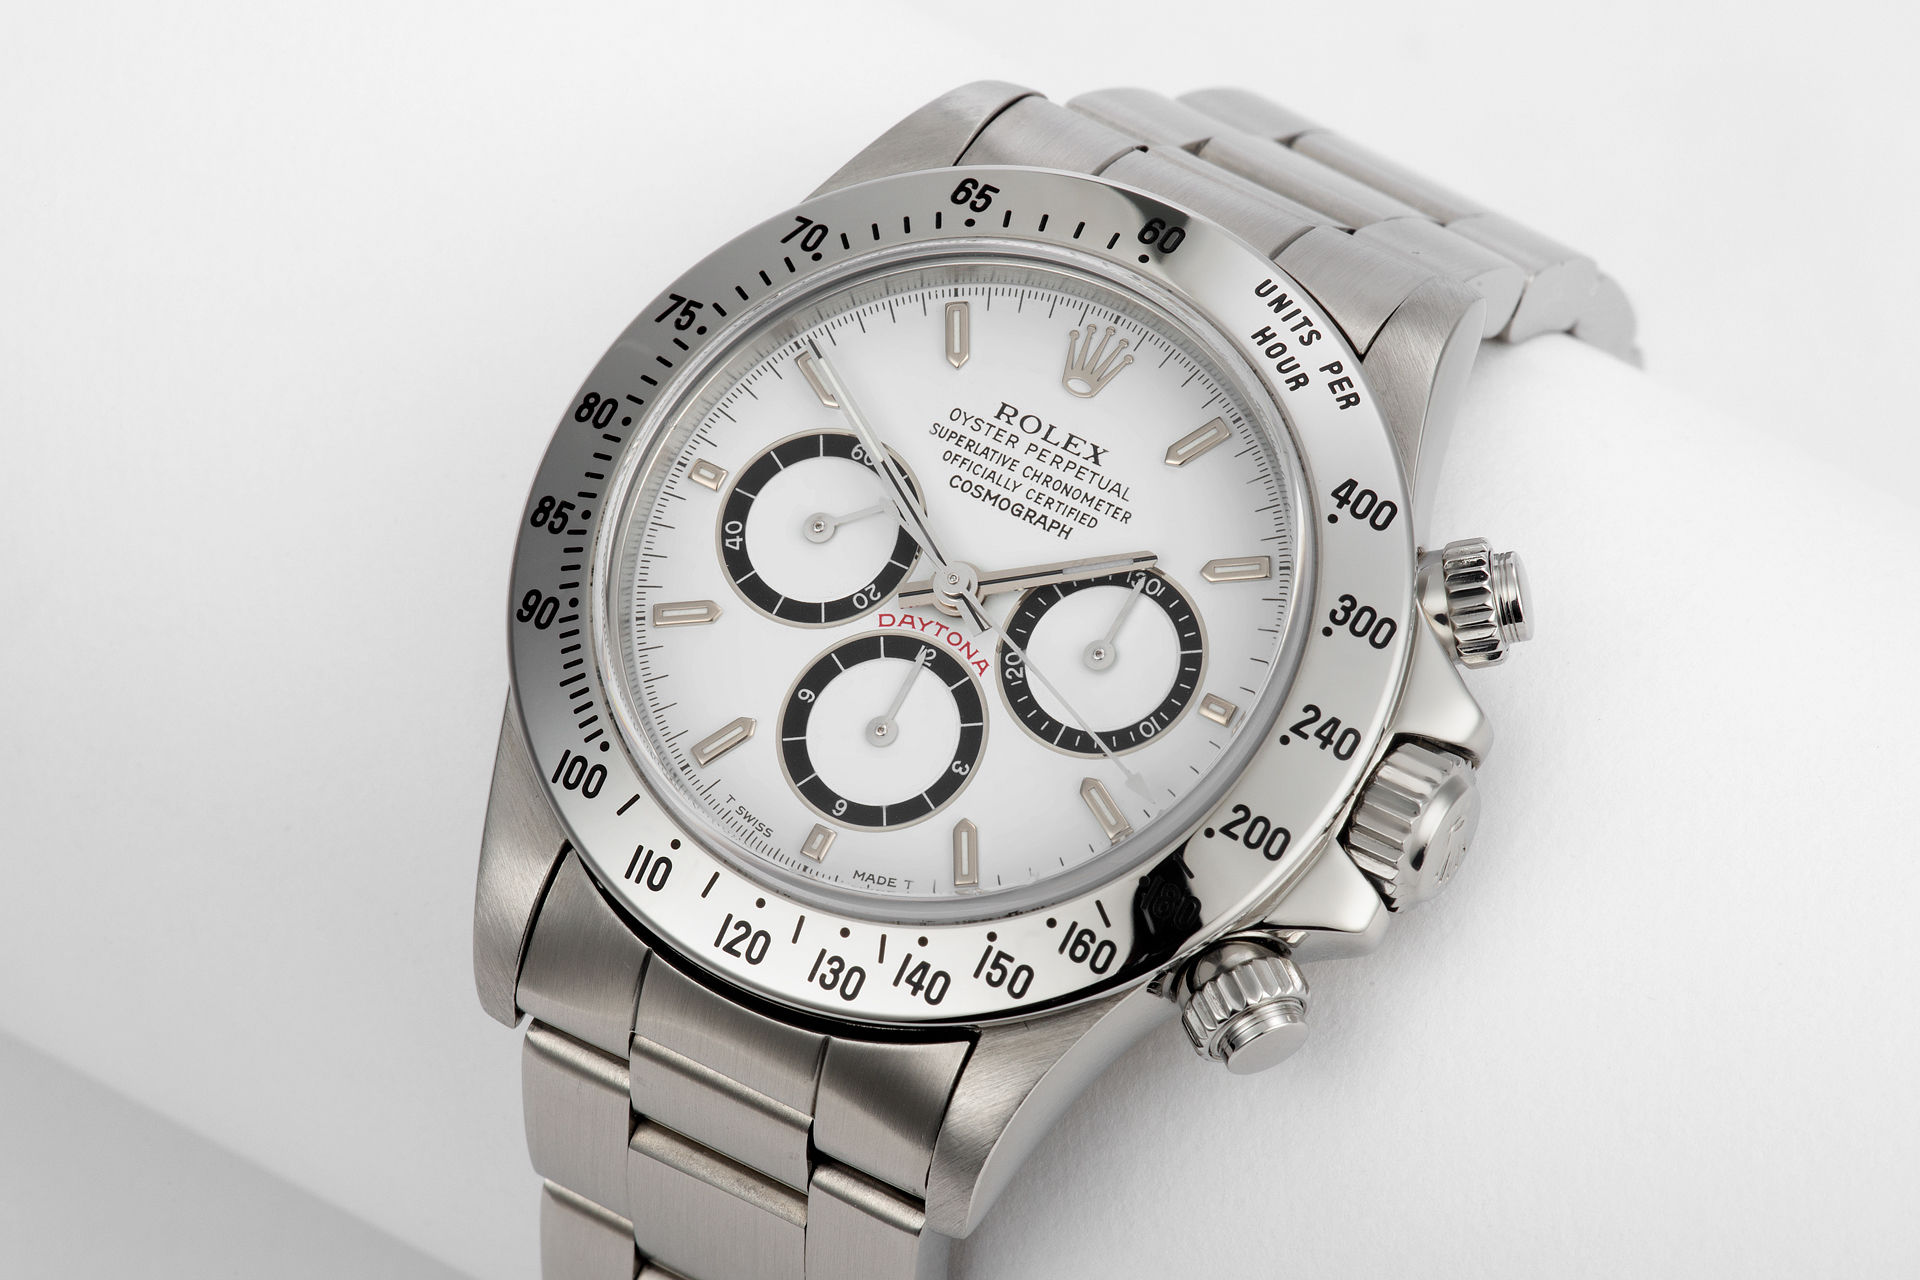 ref 16520 | L Series 'Serifed Dial' | Rolex Cosmograph Daytona